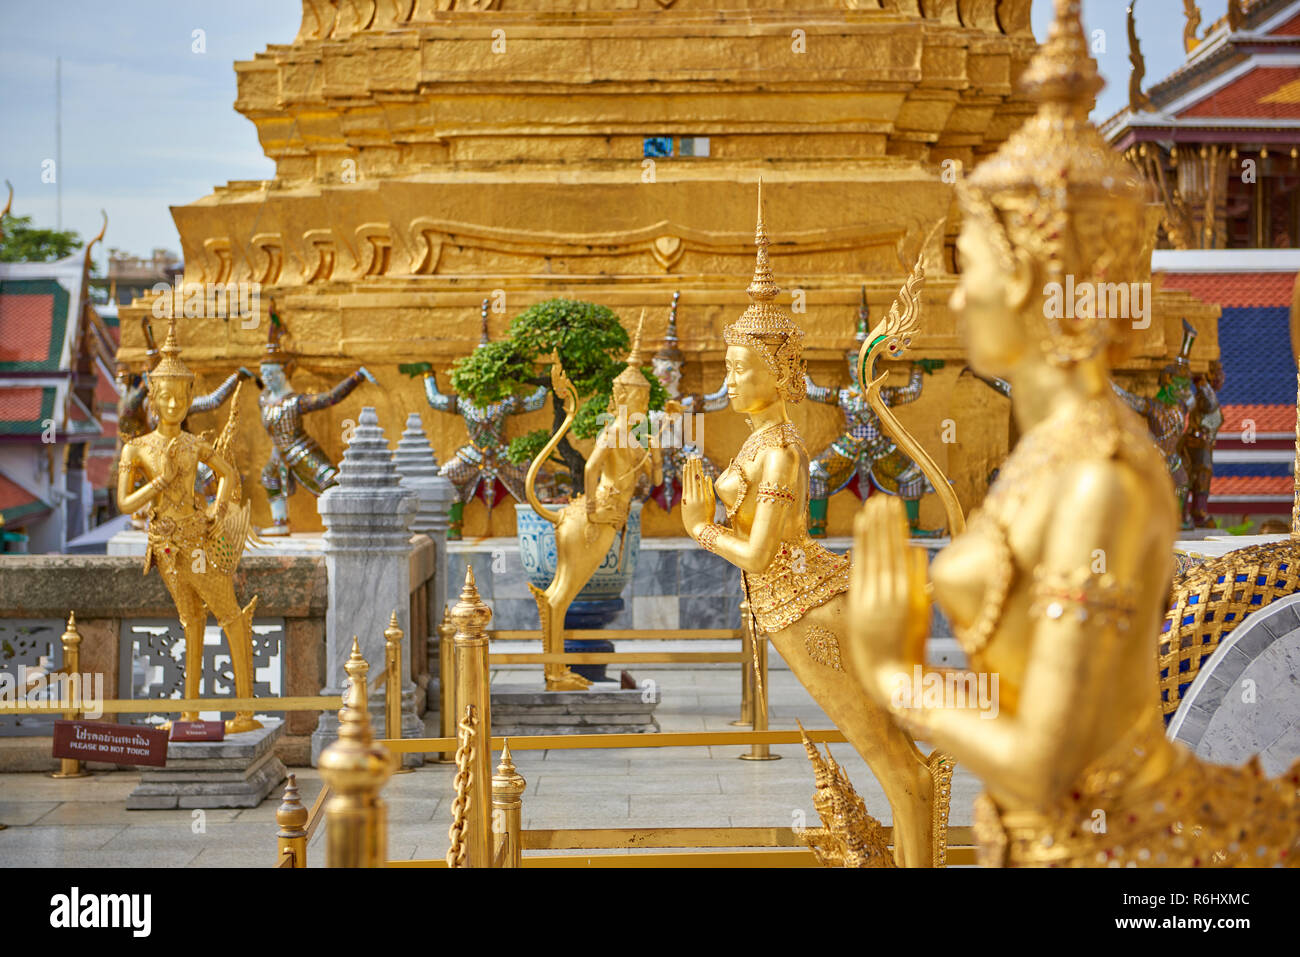 Golden dancer statues inside the Grand Palace in Bangkok, Thailand. Stock Photo